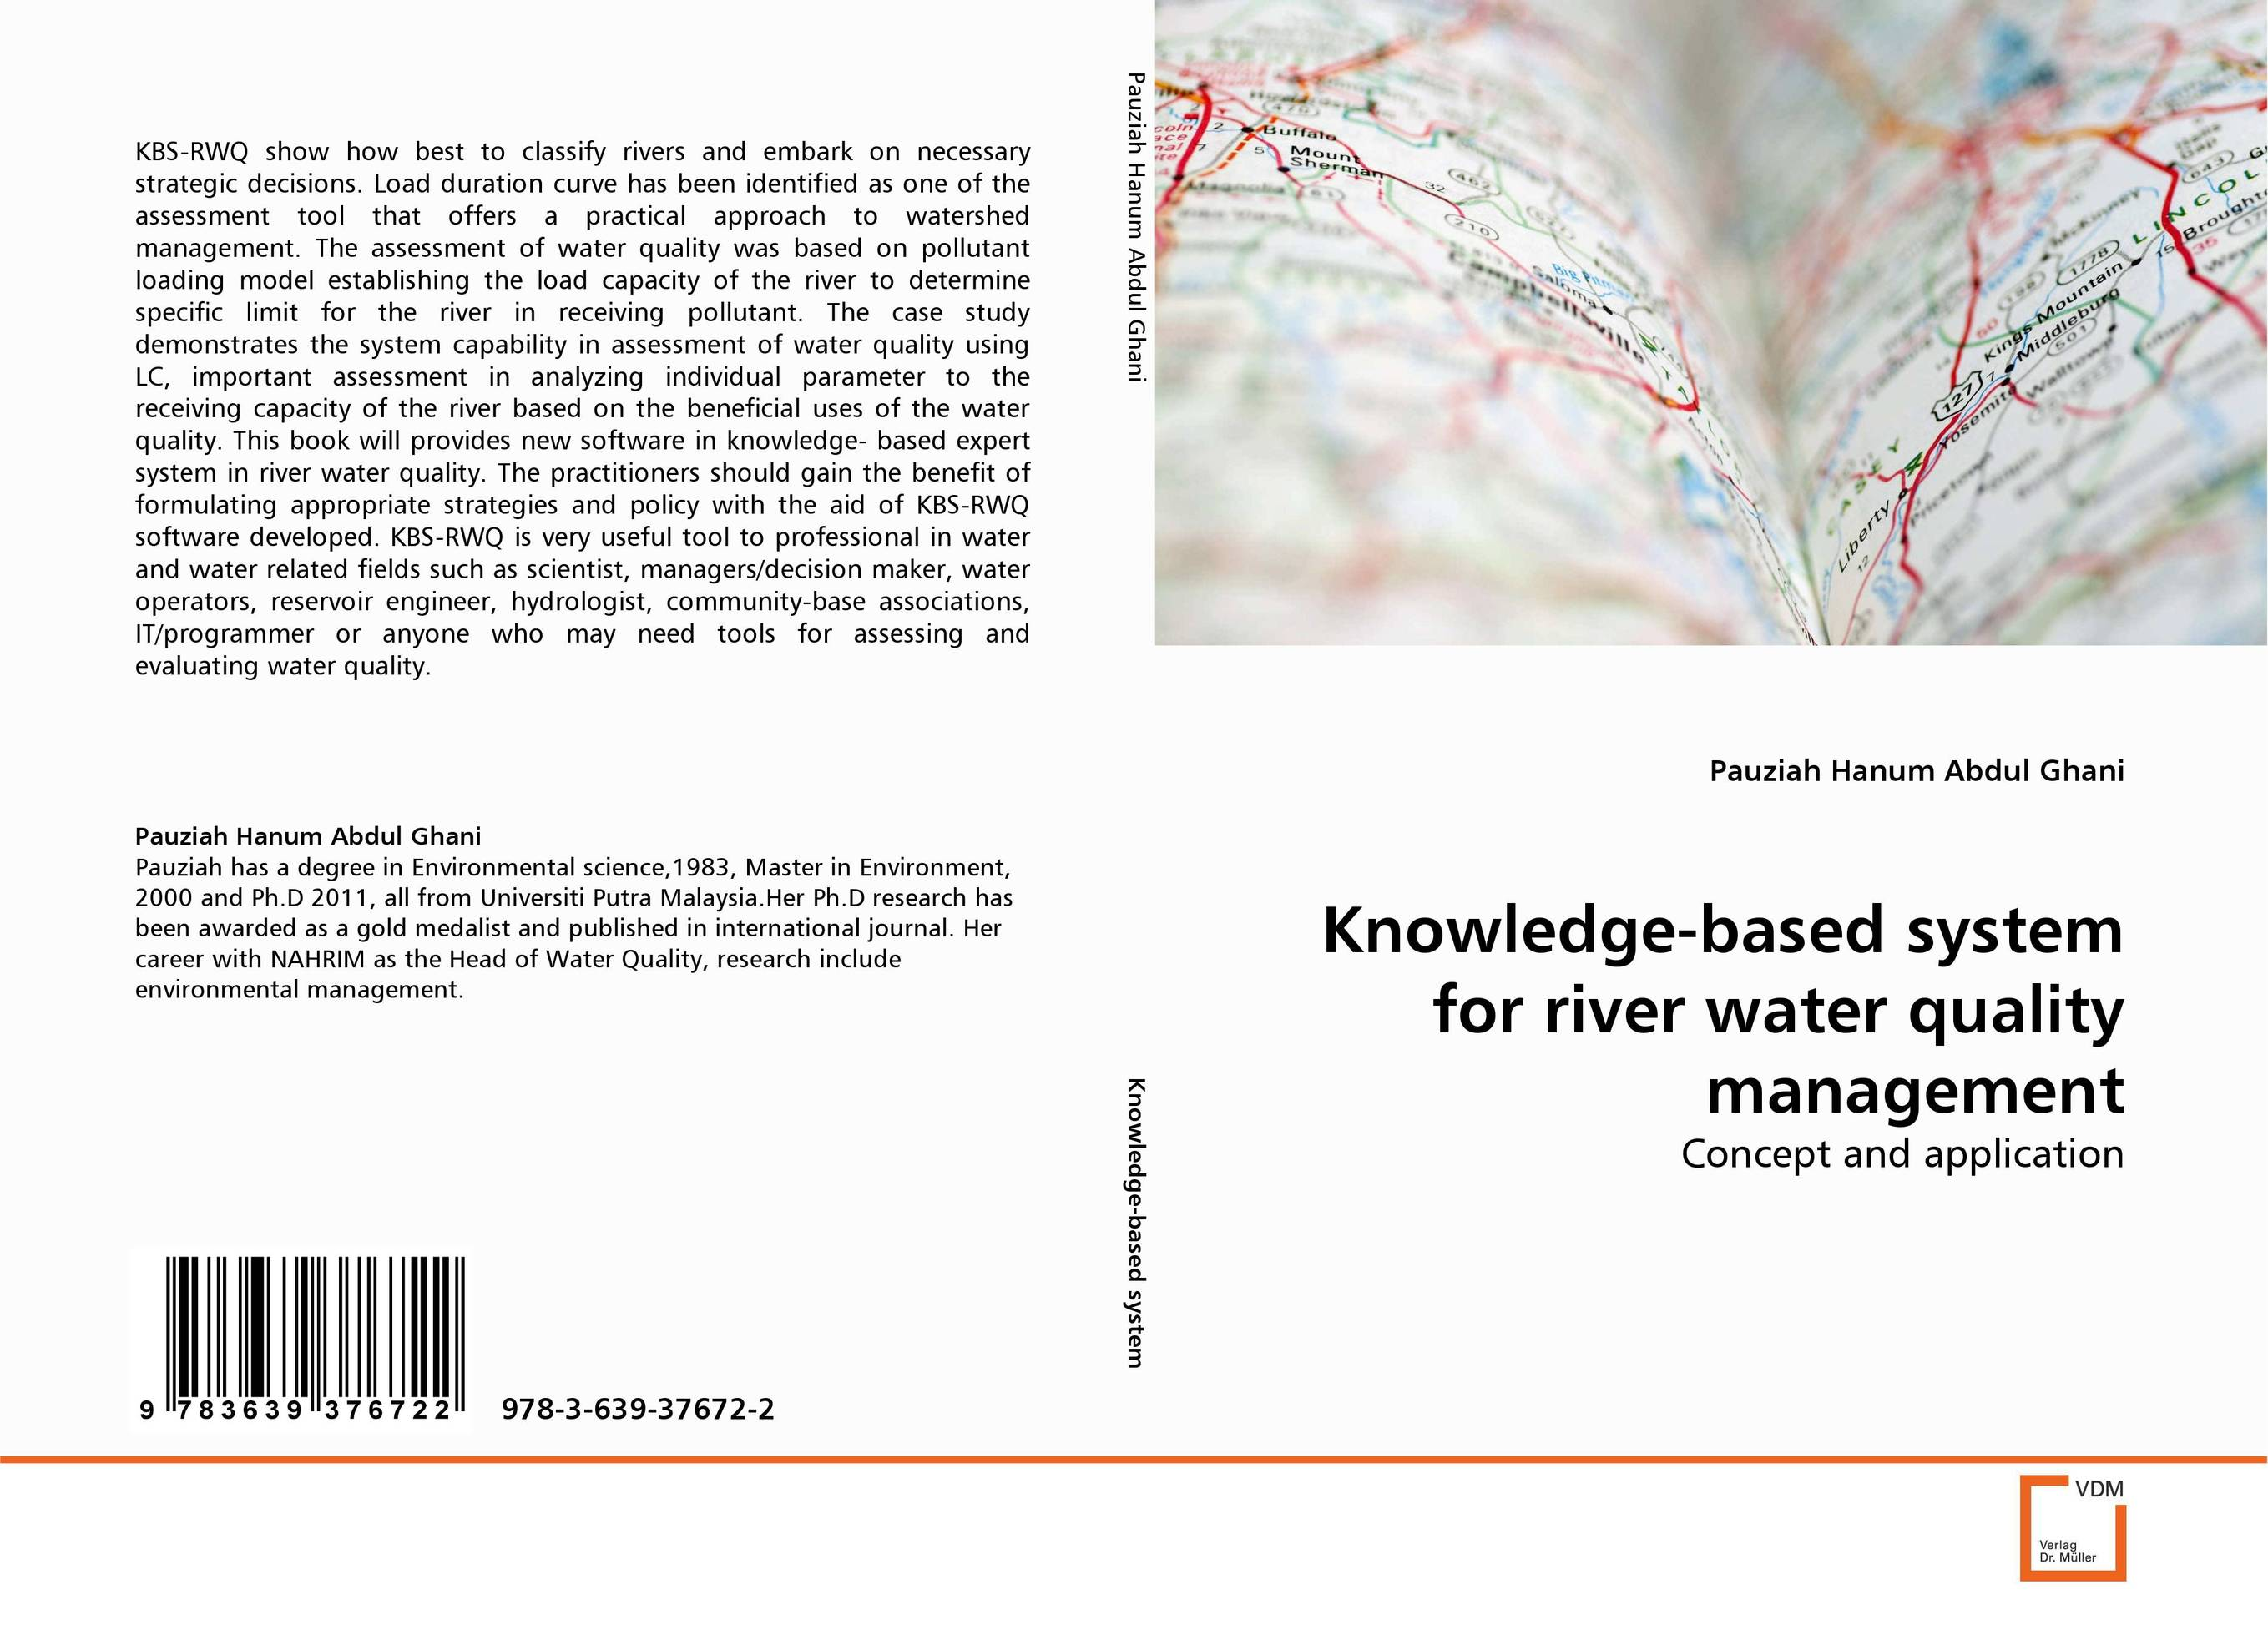 Knowledge-based system for river water quality management effects of dams on river water quality